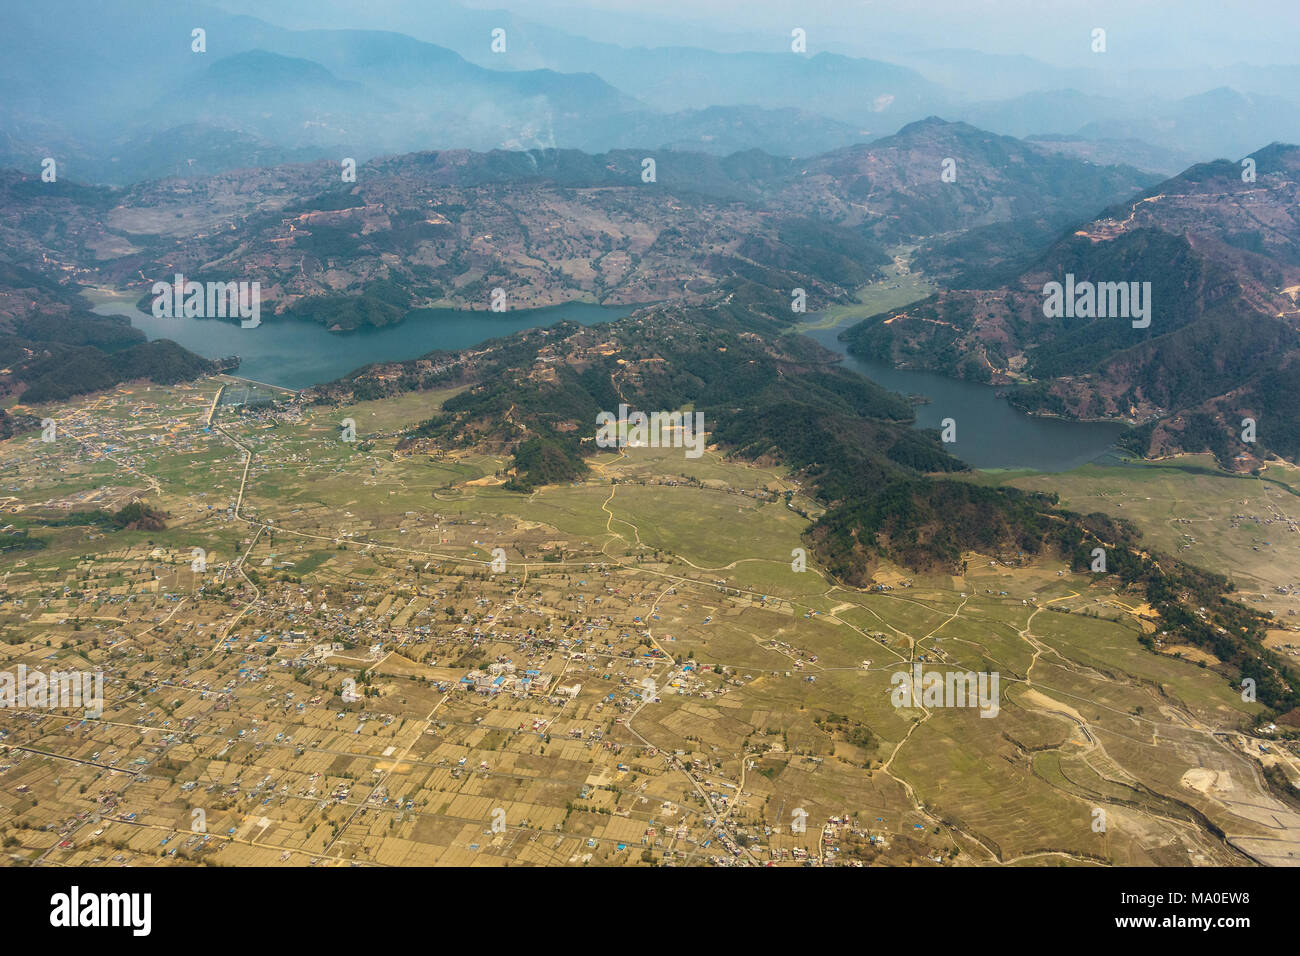 Aerial view of Begnas and Rupa lakes near Pokhara in Nepal - Stock Image